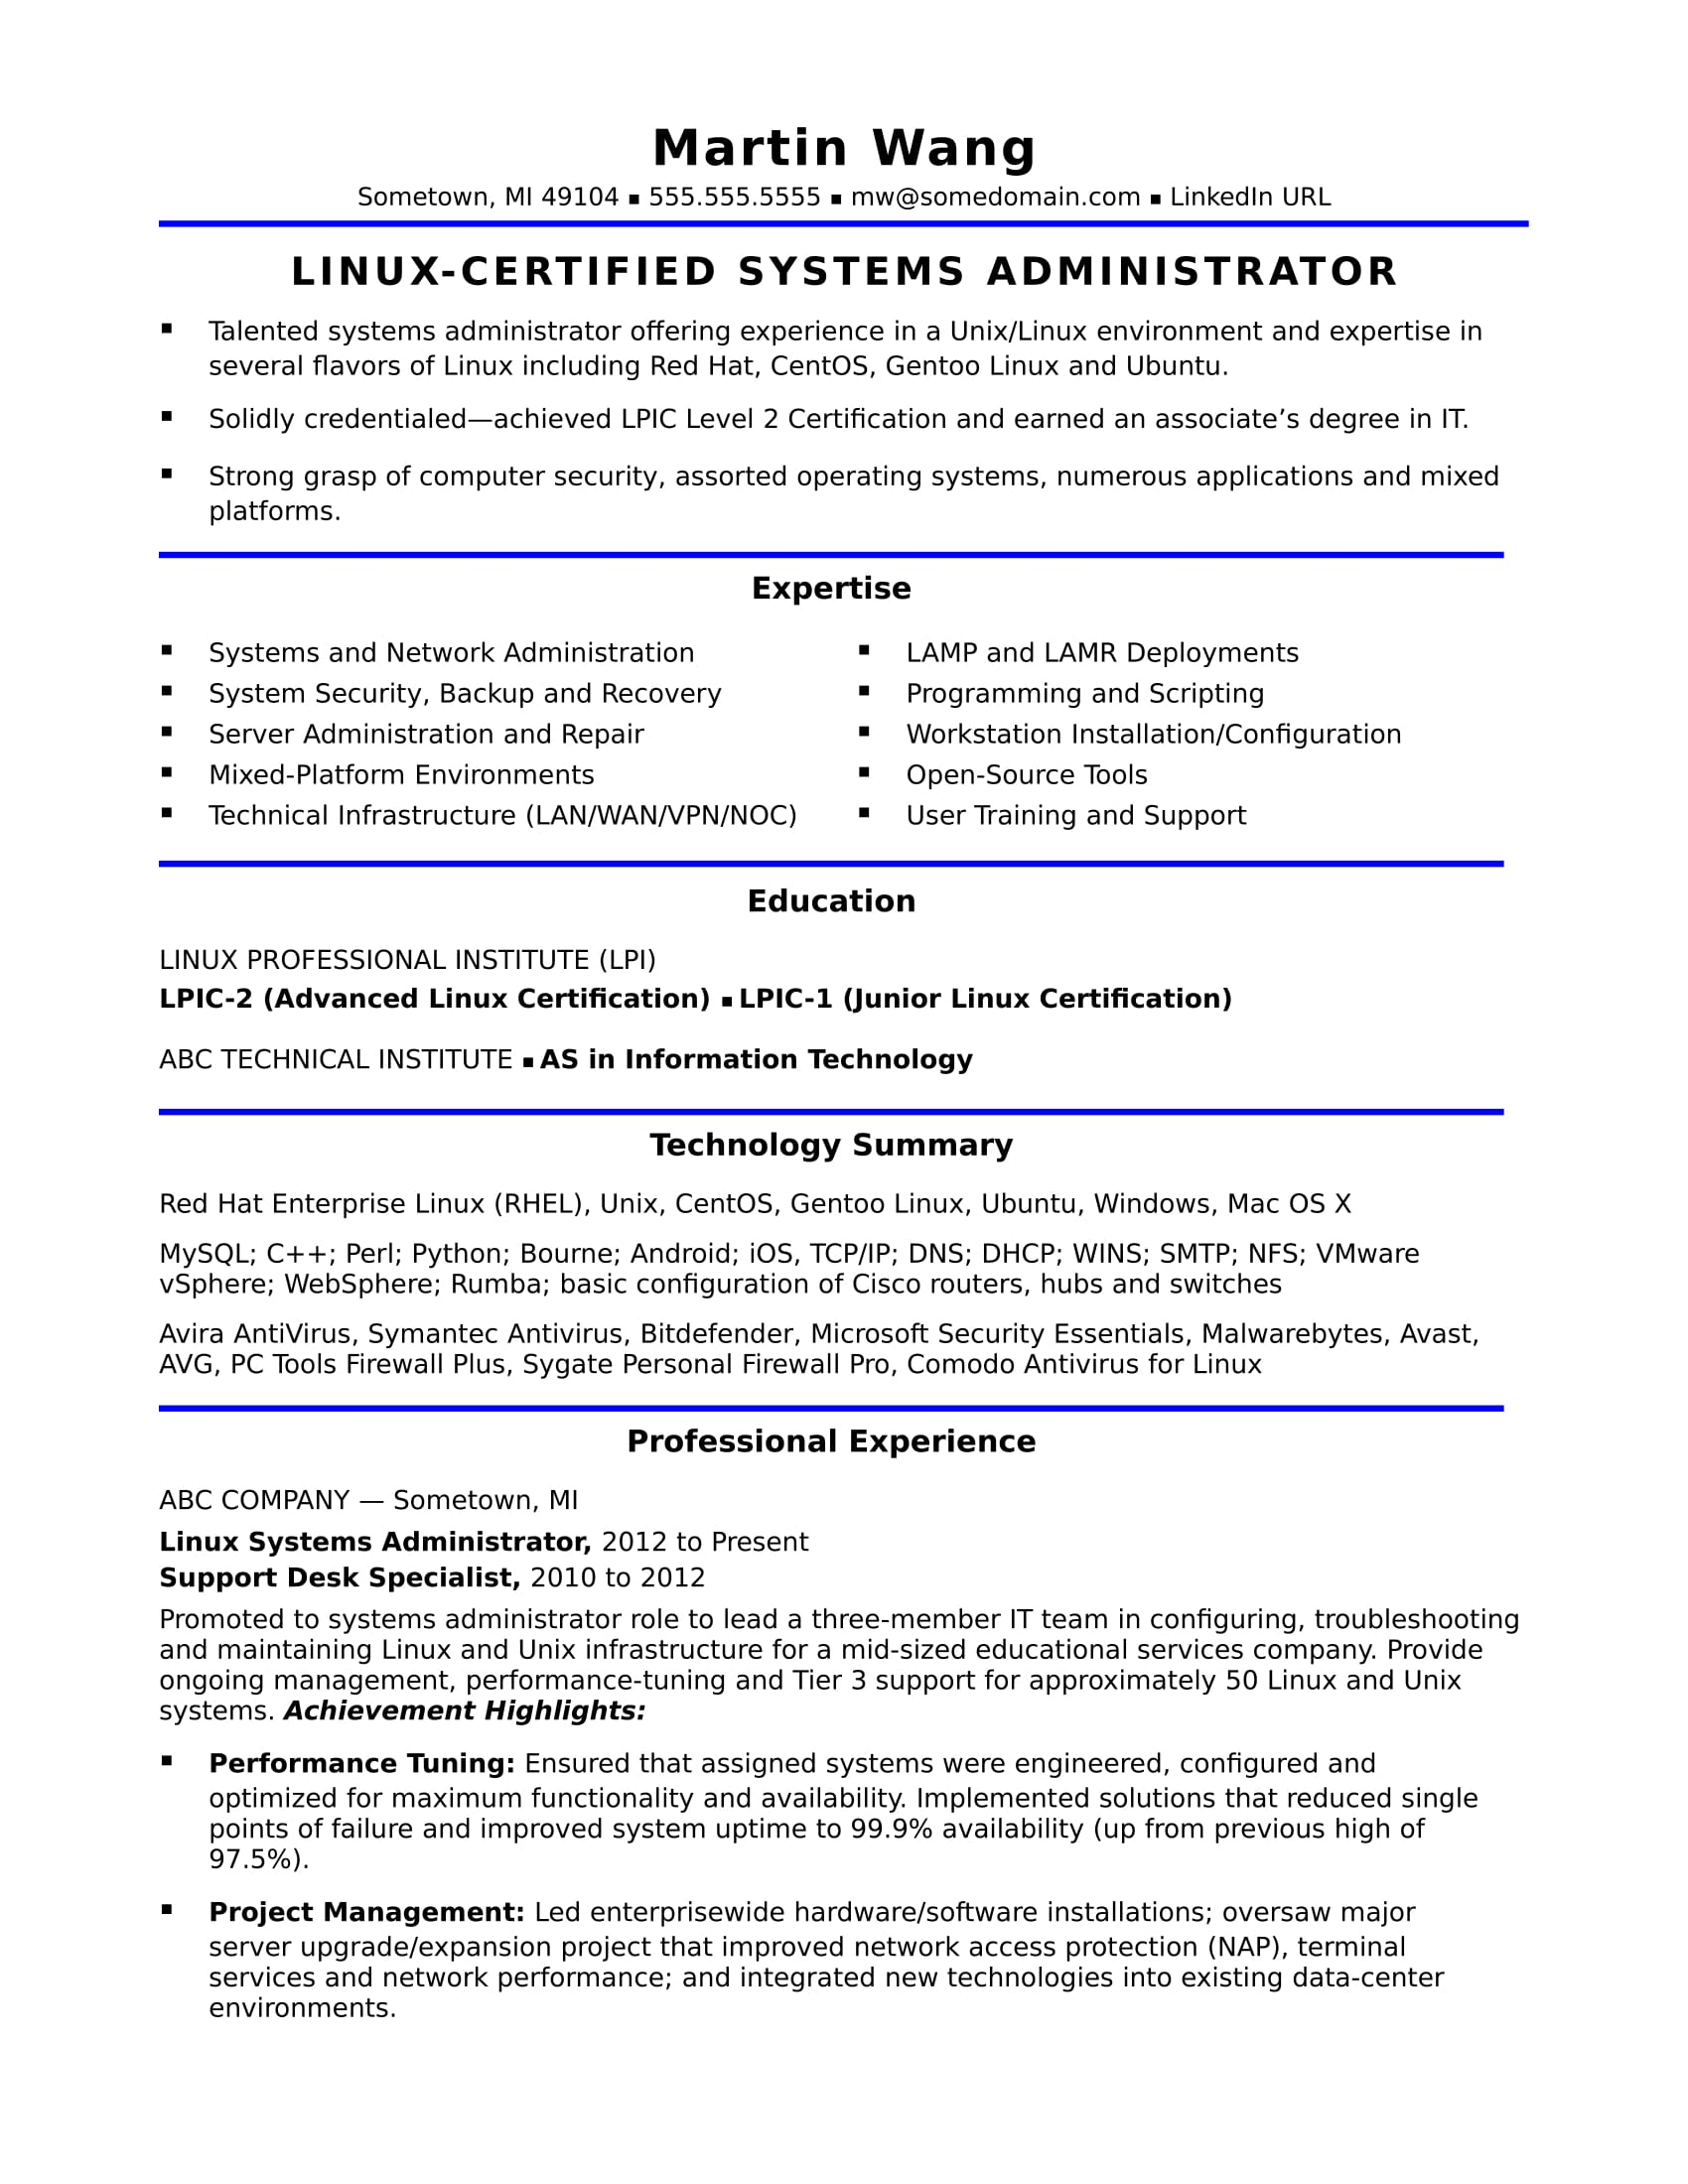 sample resume for midlevel systems administrator monster experienced network quality Resume Sample Resume For Experienced Network Administrator